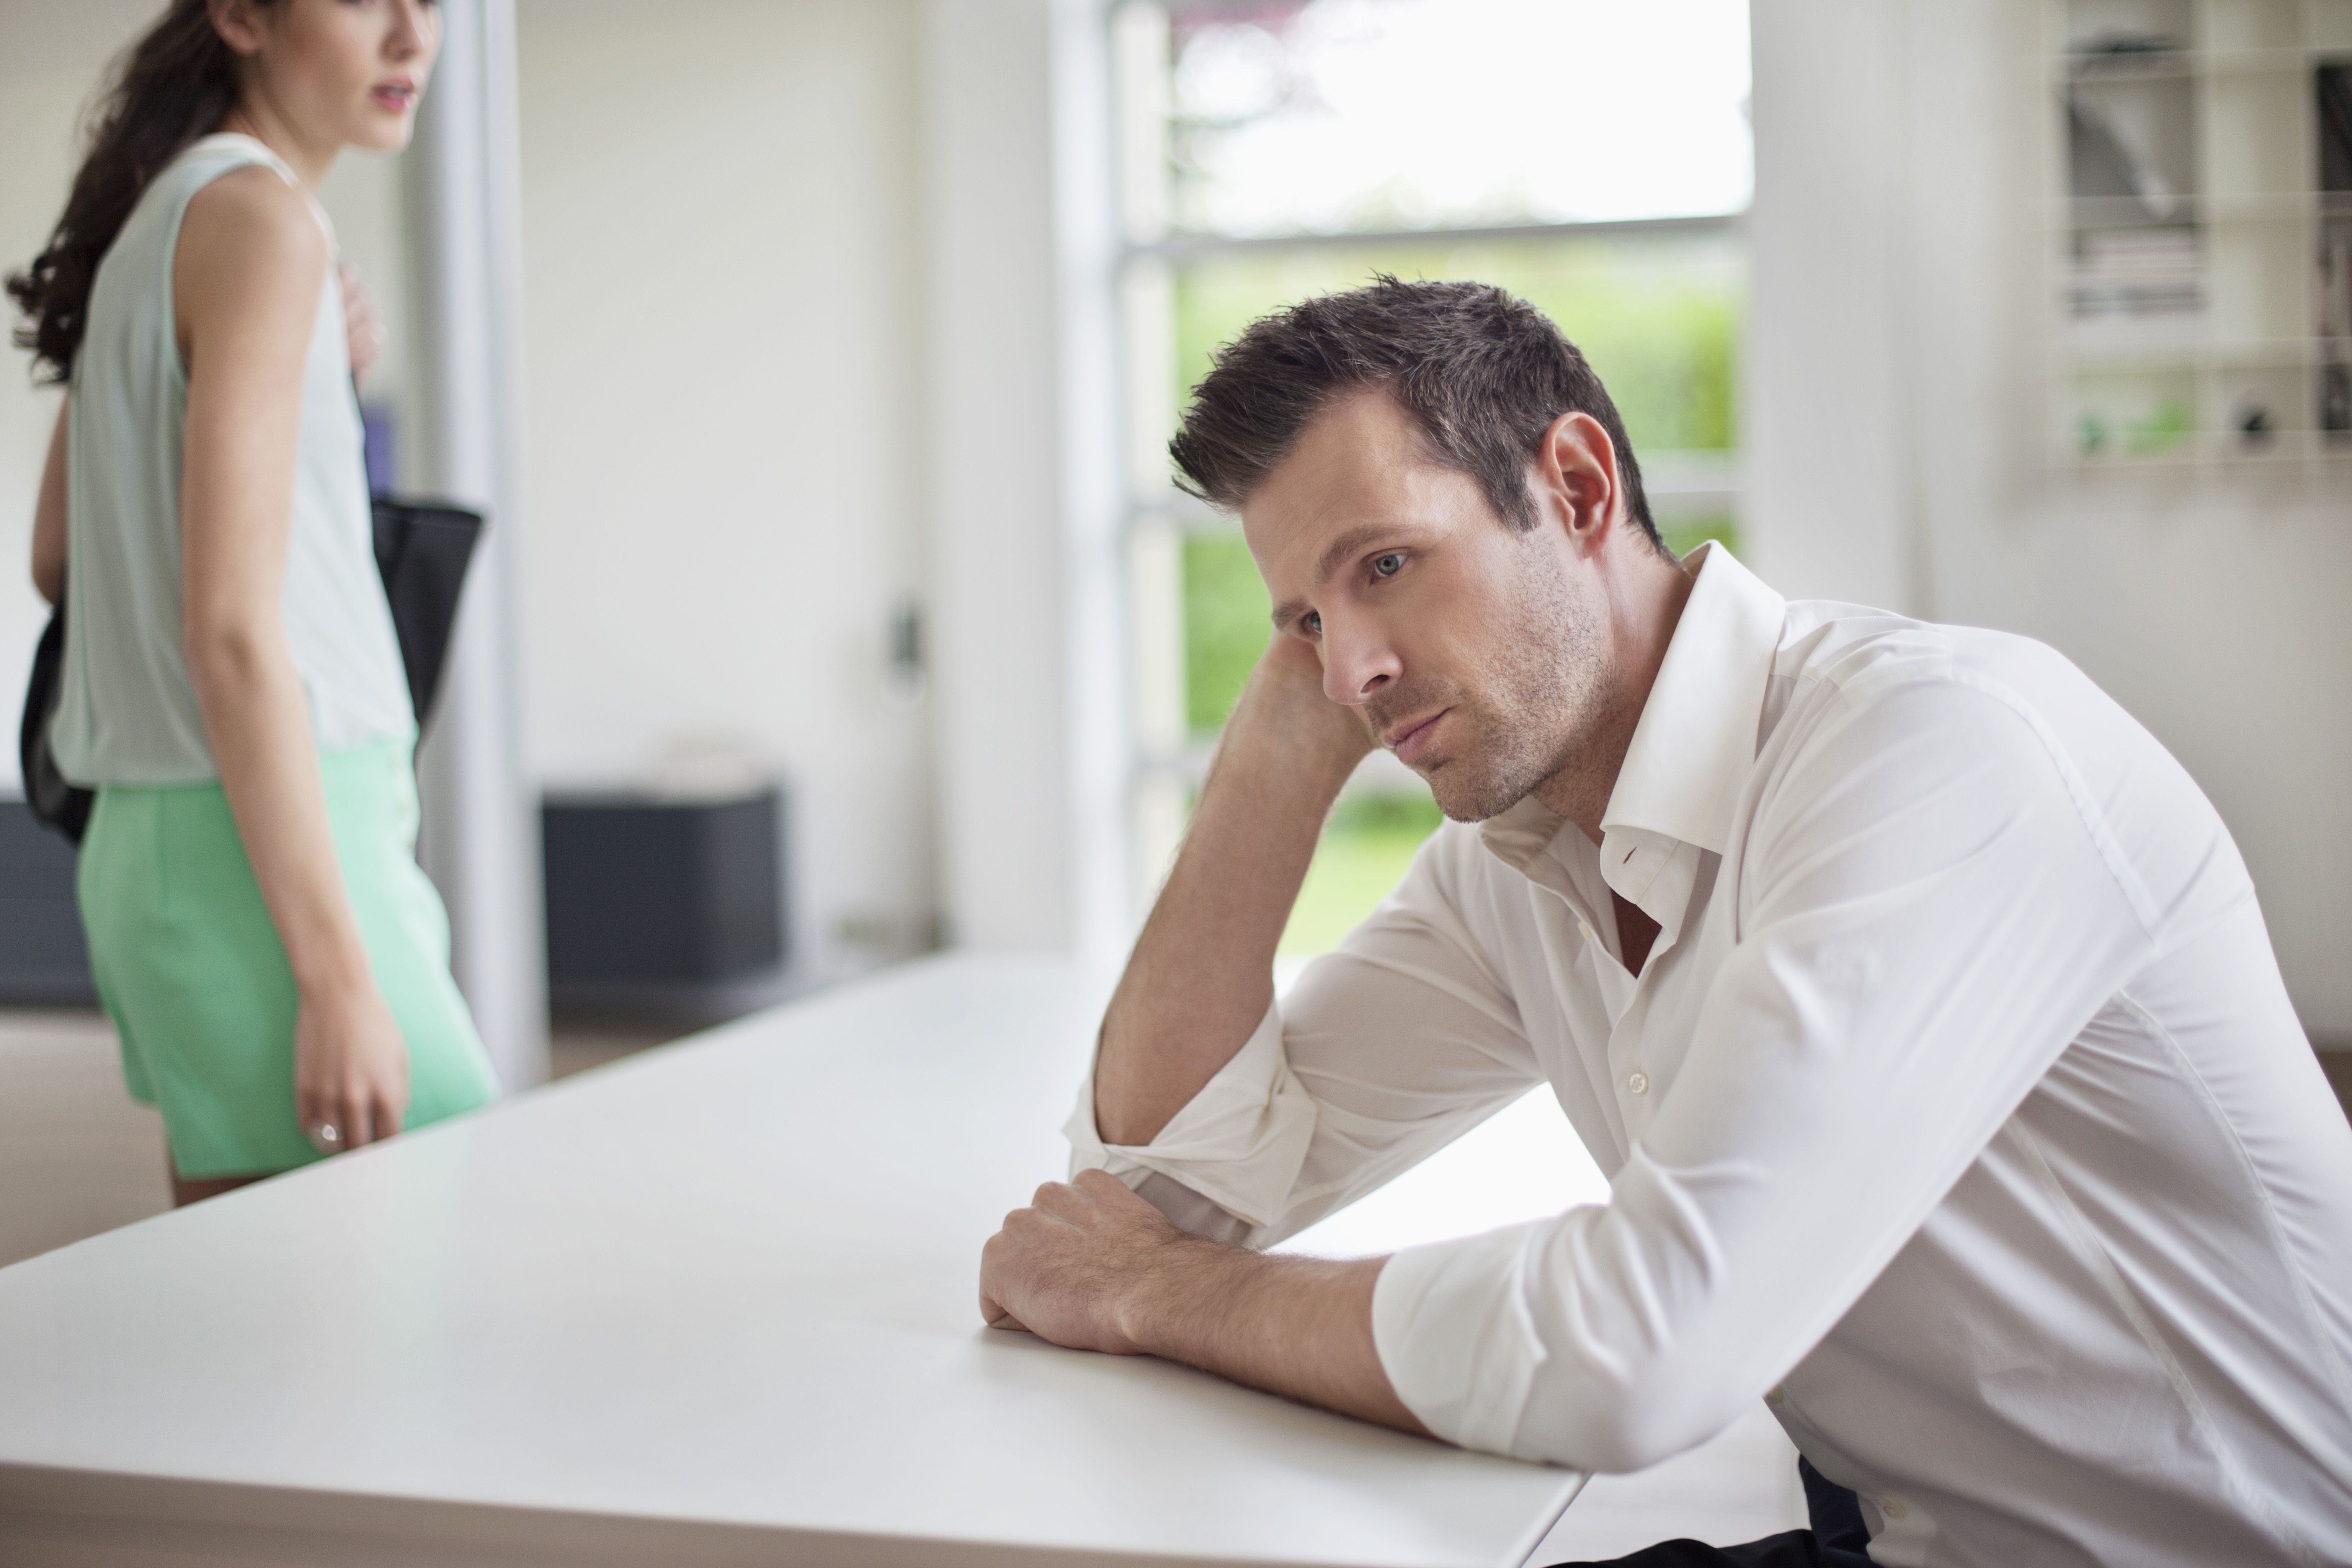 Signs your partner is depressed